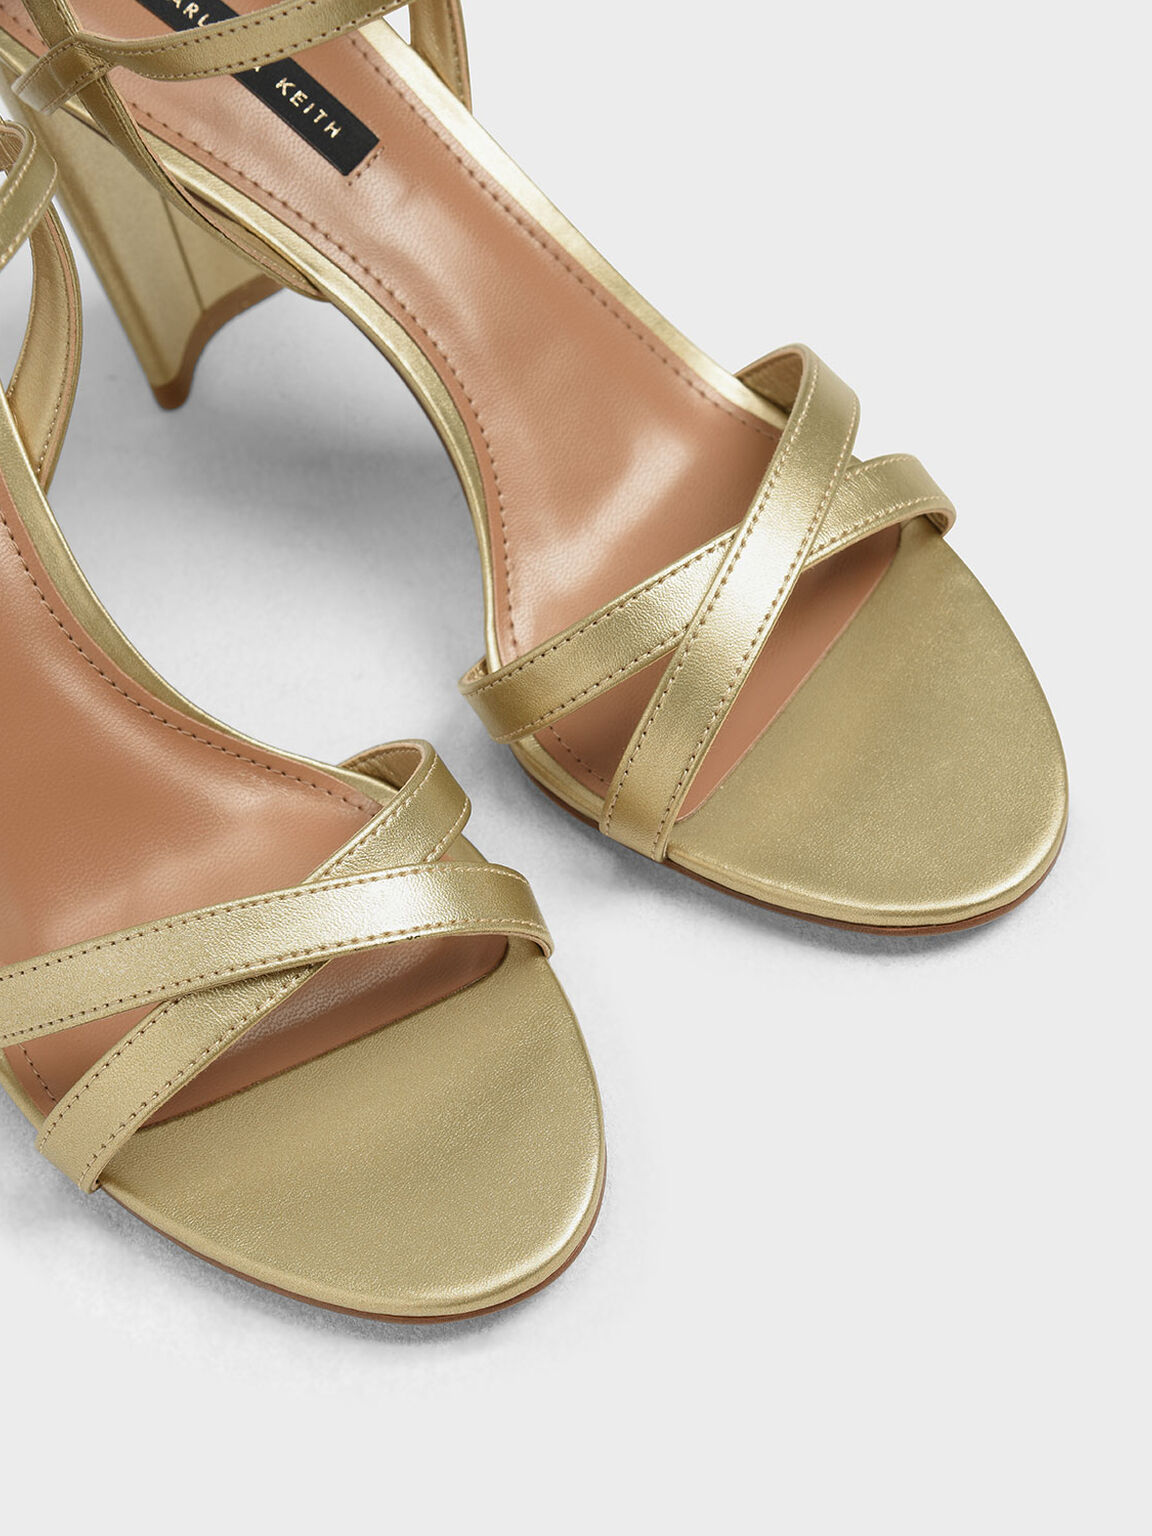 Curved Block Heel Strappy Sandals, Gold, hi-res